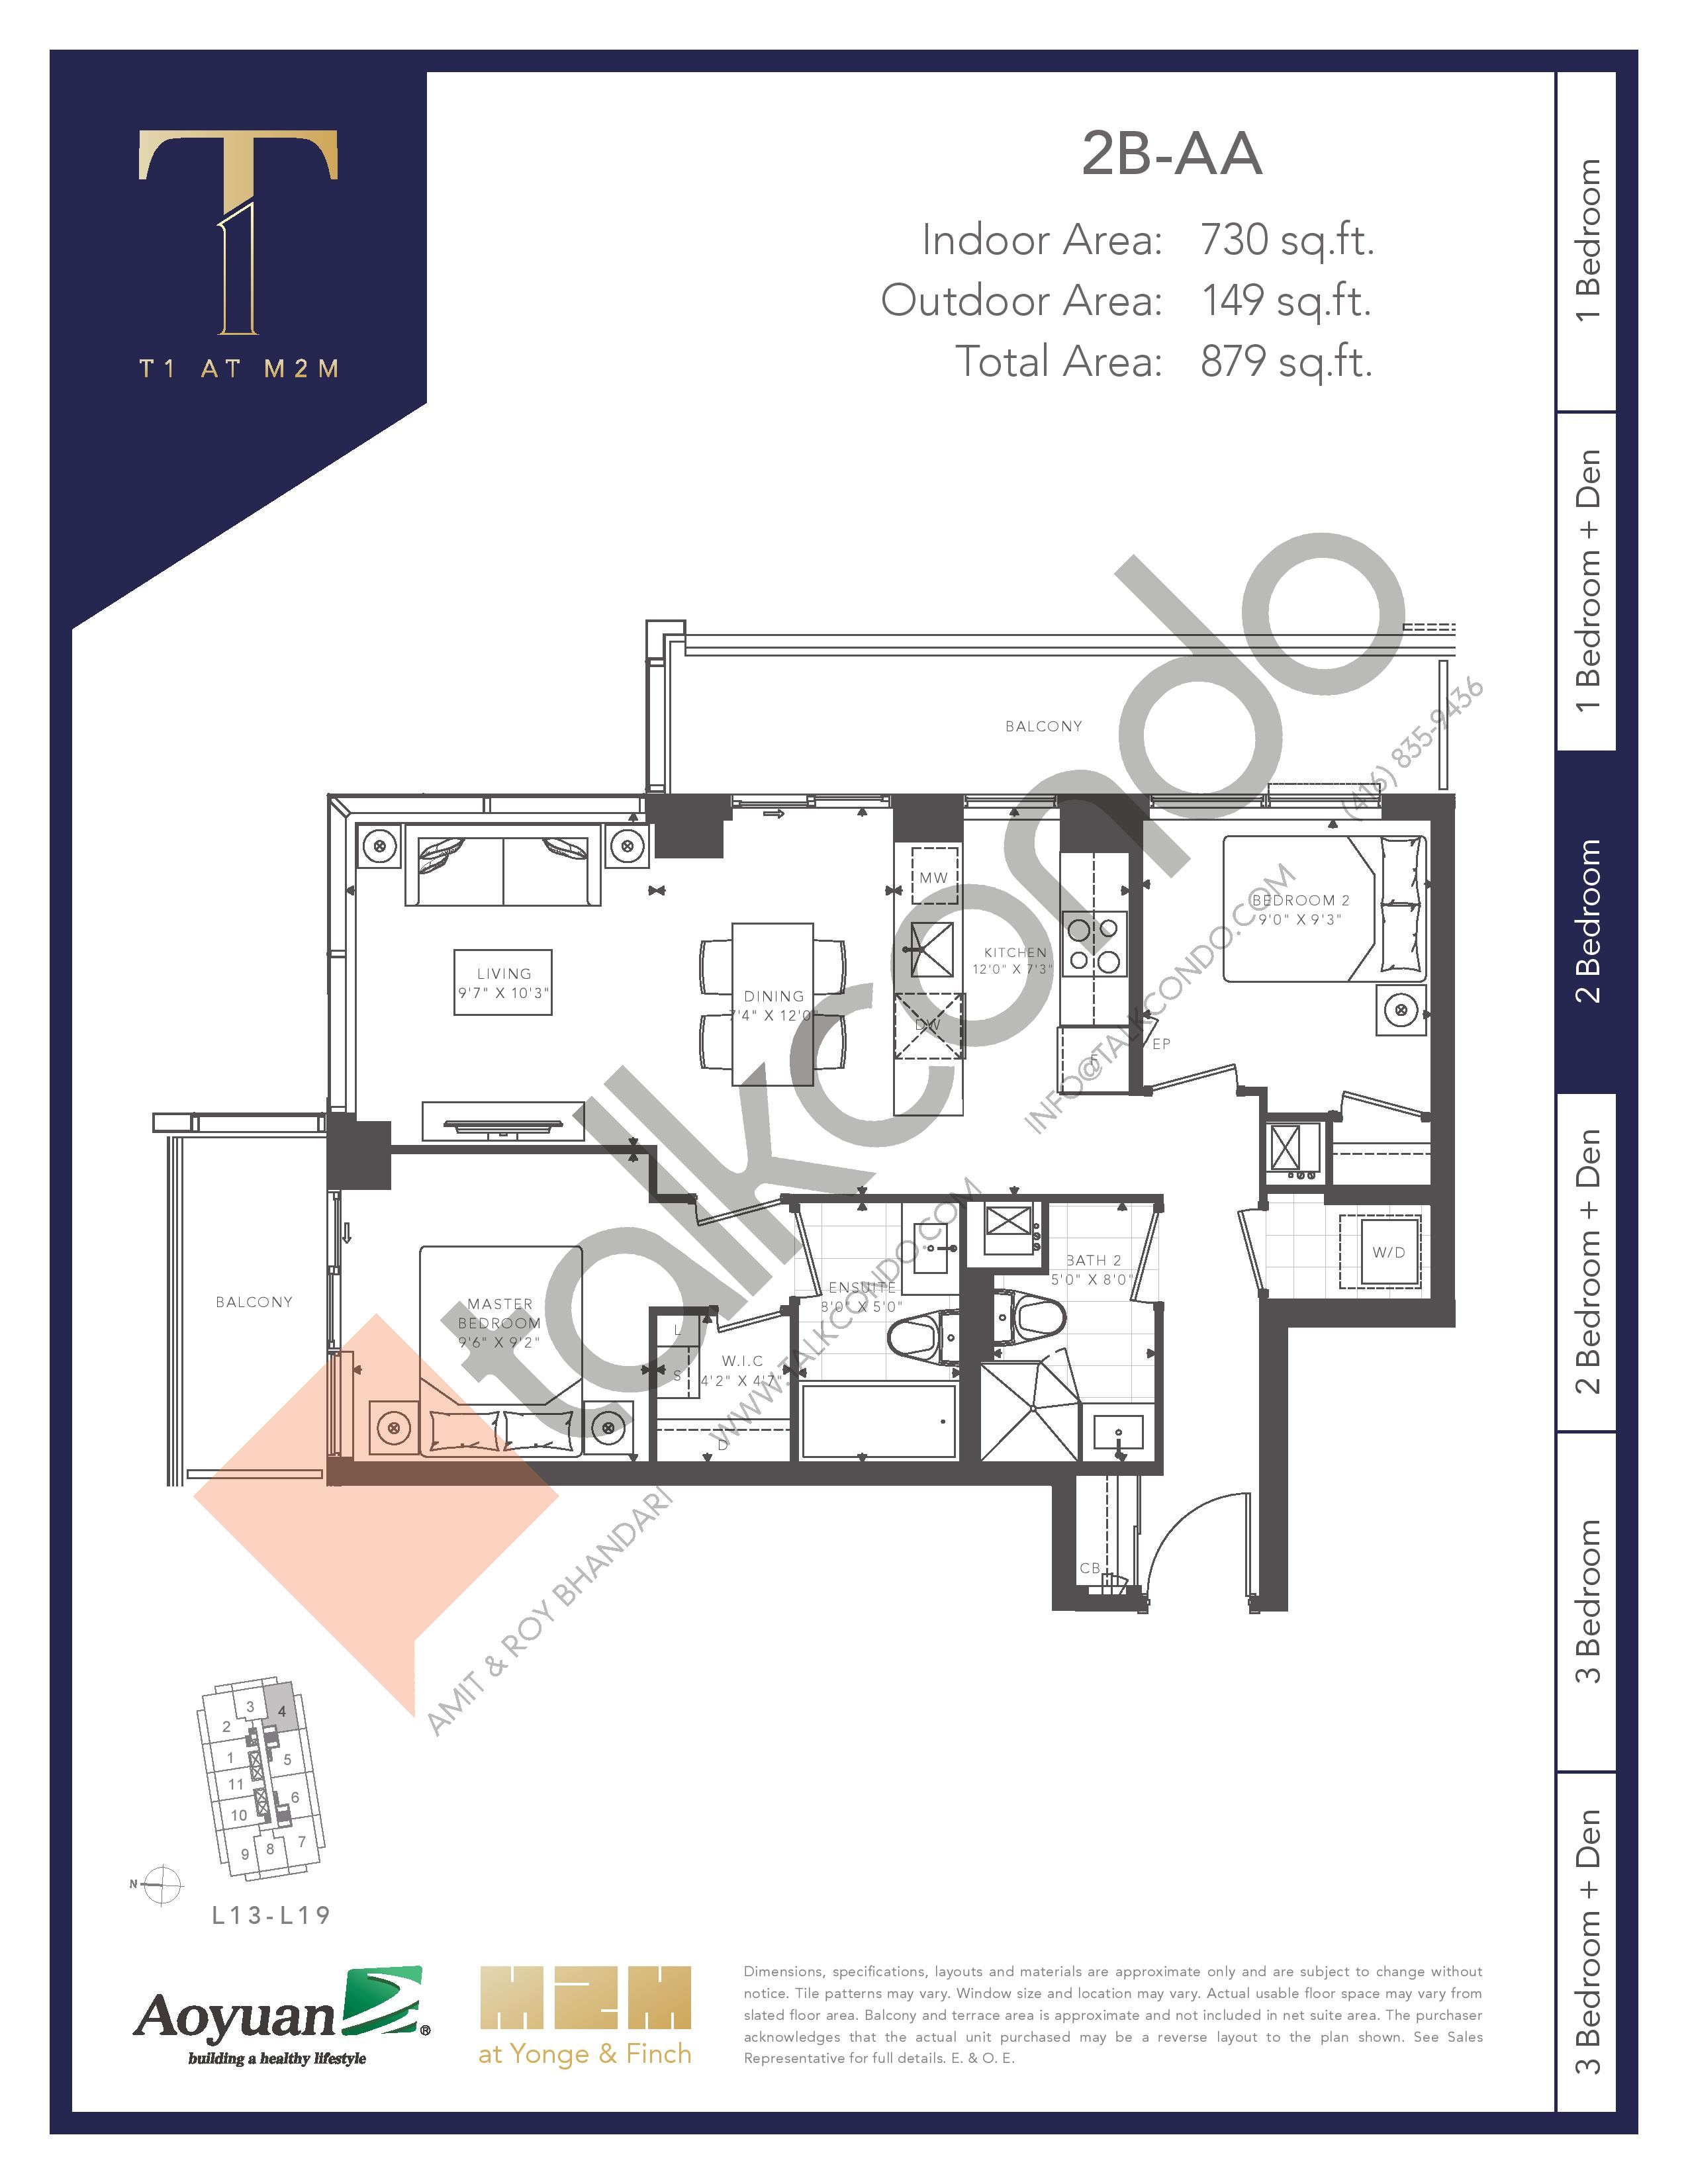 2B-AA (Tower) Floor Plan at T1 at M2M Condos - 730 sq.ft